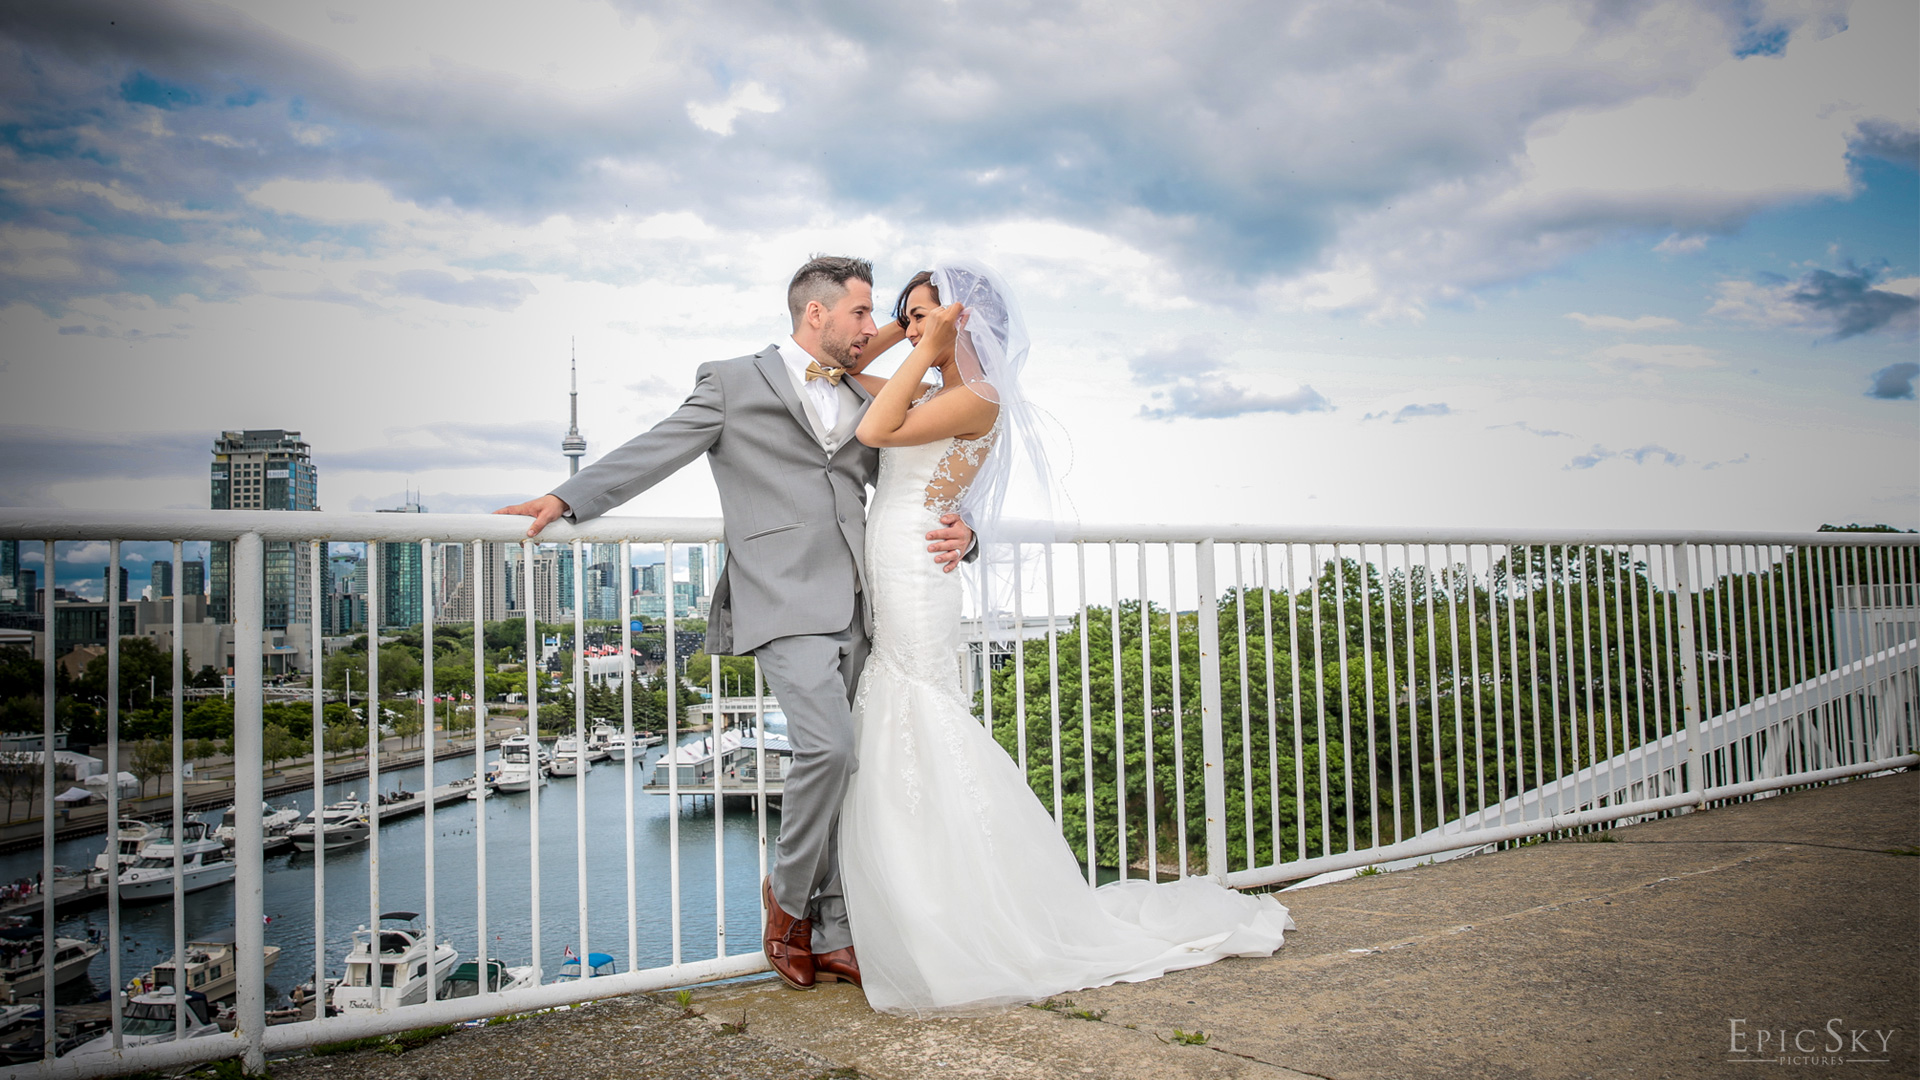 epicskypictures_just_married_photography_wedding_photoshoot_gettingmarried_oakville_toronto_groom_bride_roof_top_thisisepic_toronto_chicago_site